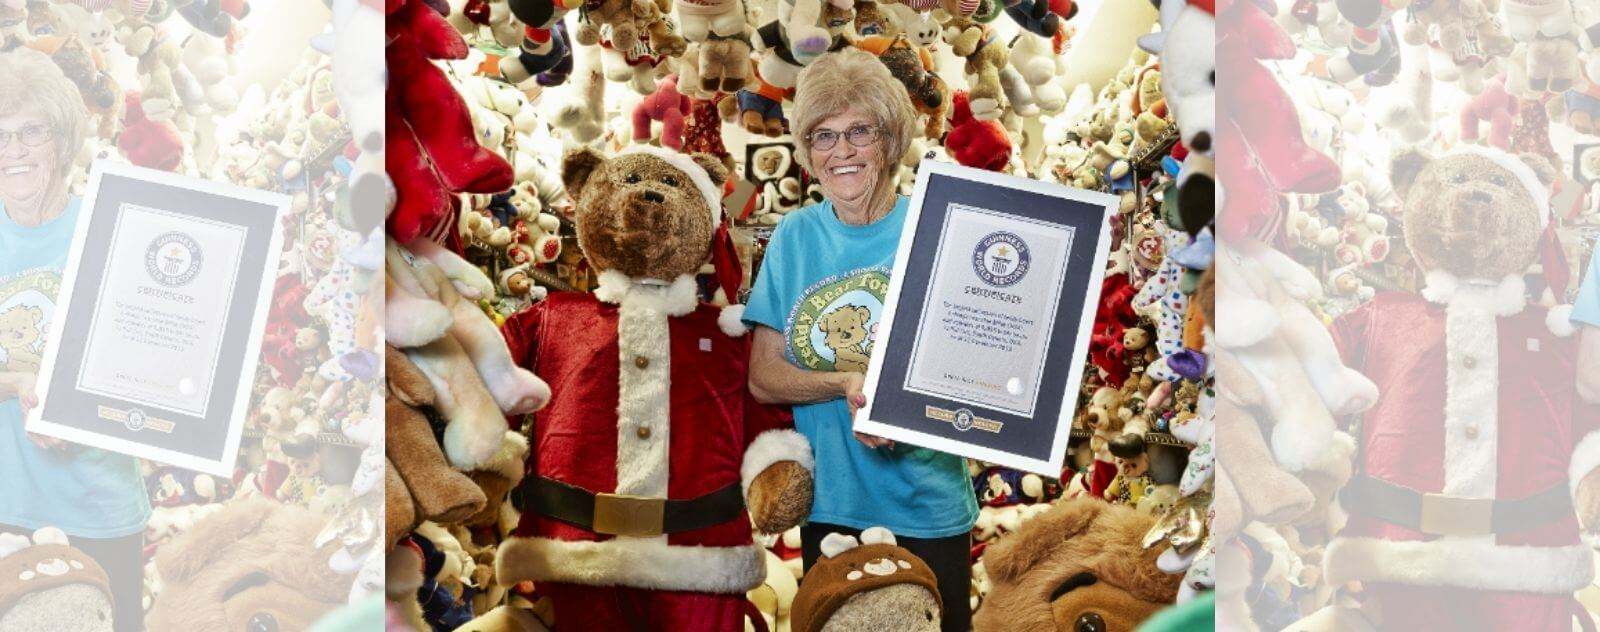 Le Record Officiel de la Plus Grande Collection de Peluche du Guinness World Record 2018